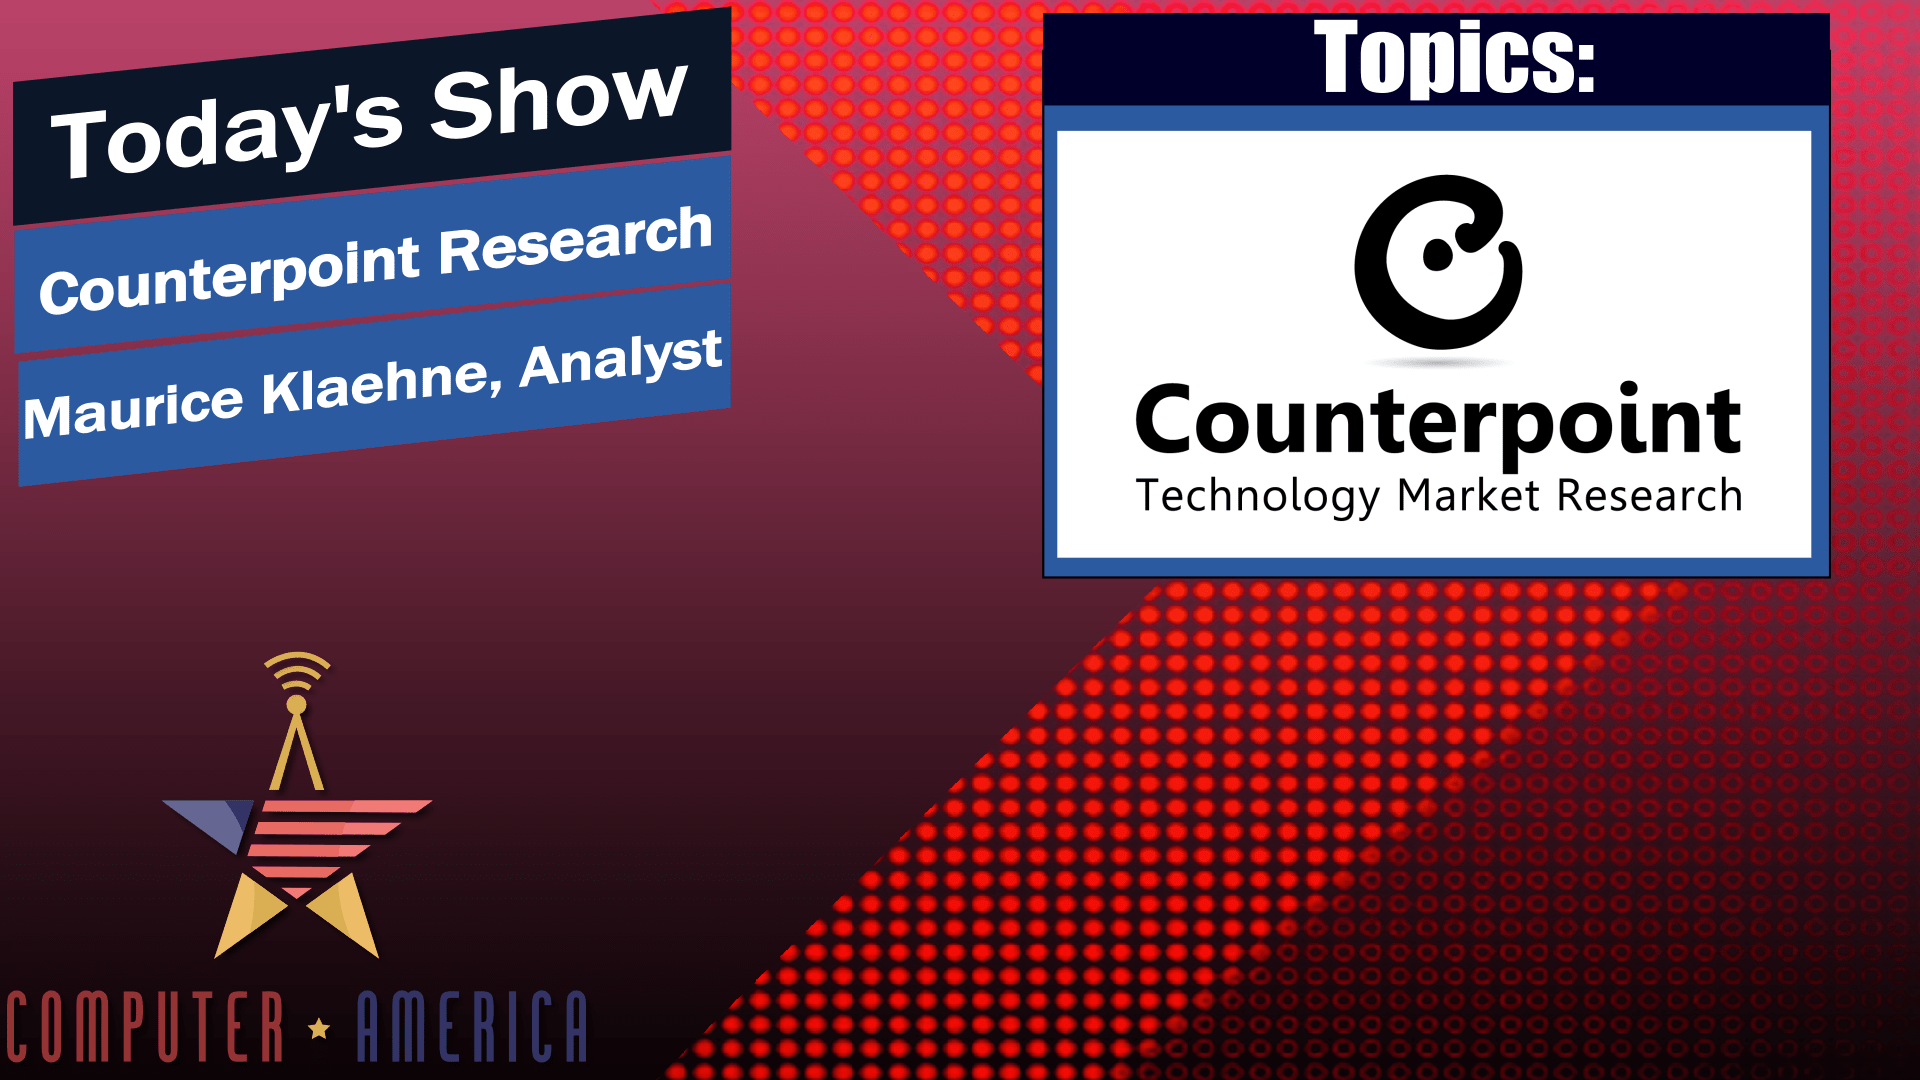 Computer America Featuring Maurice Klaehne Smart Phone, 5G Rollout, Gaming Phones